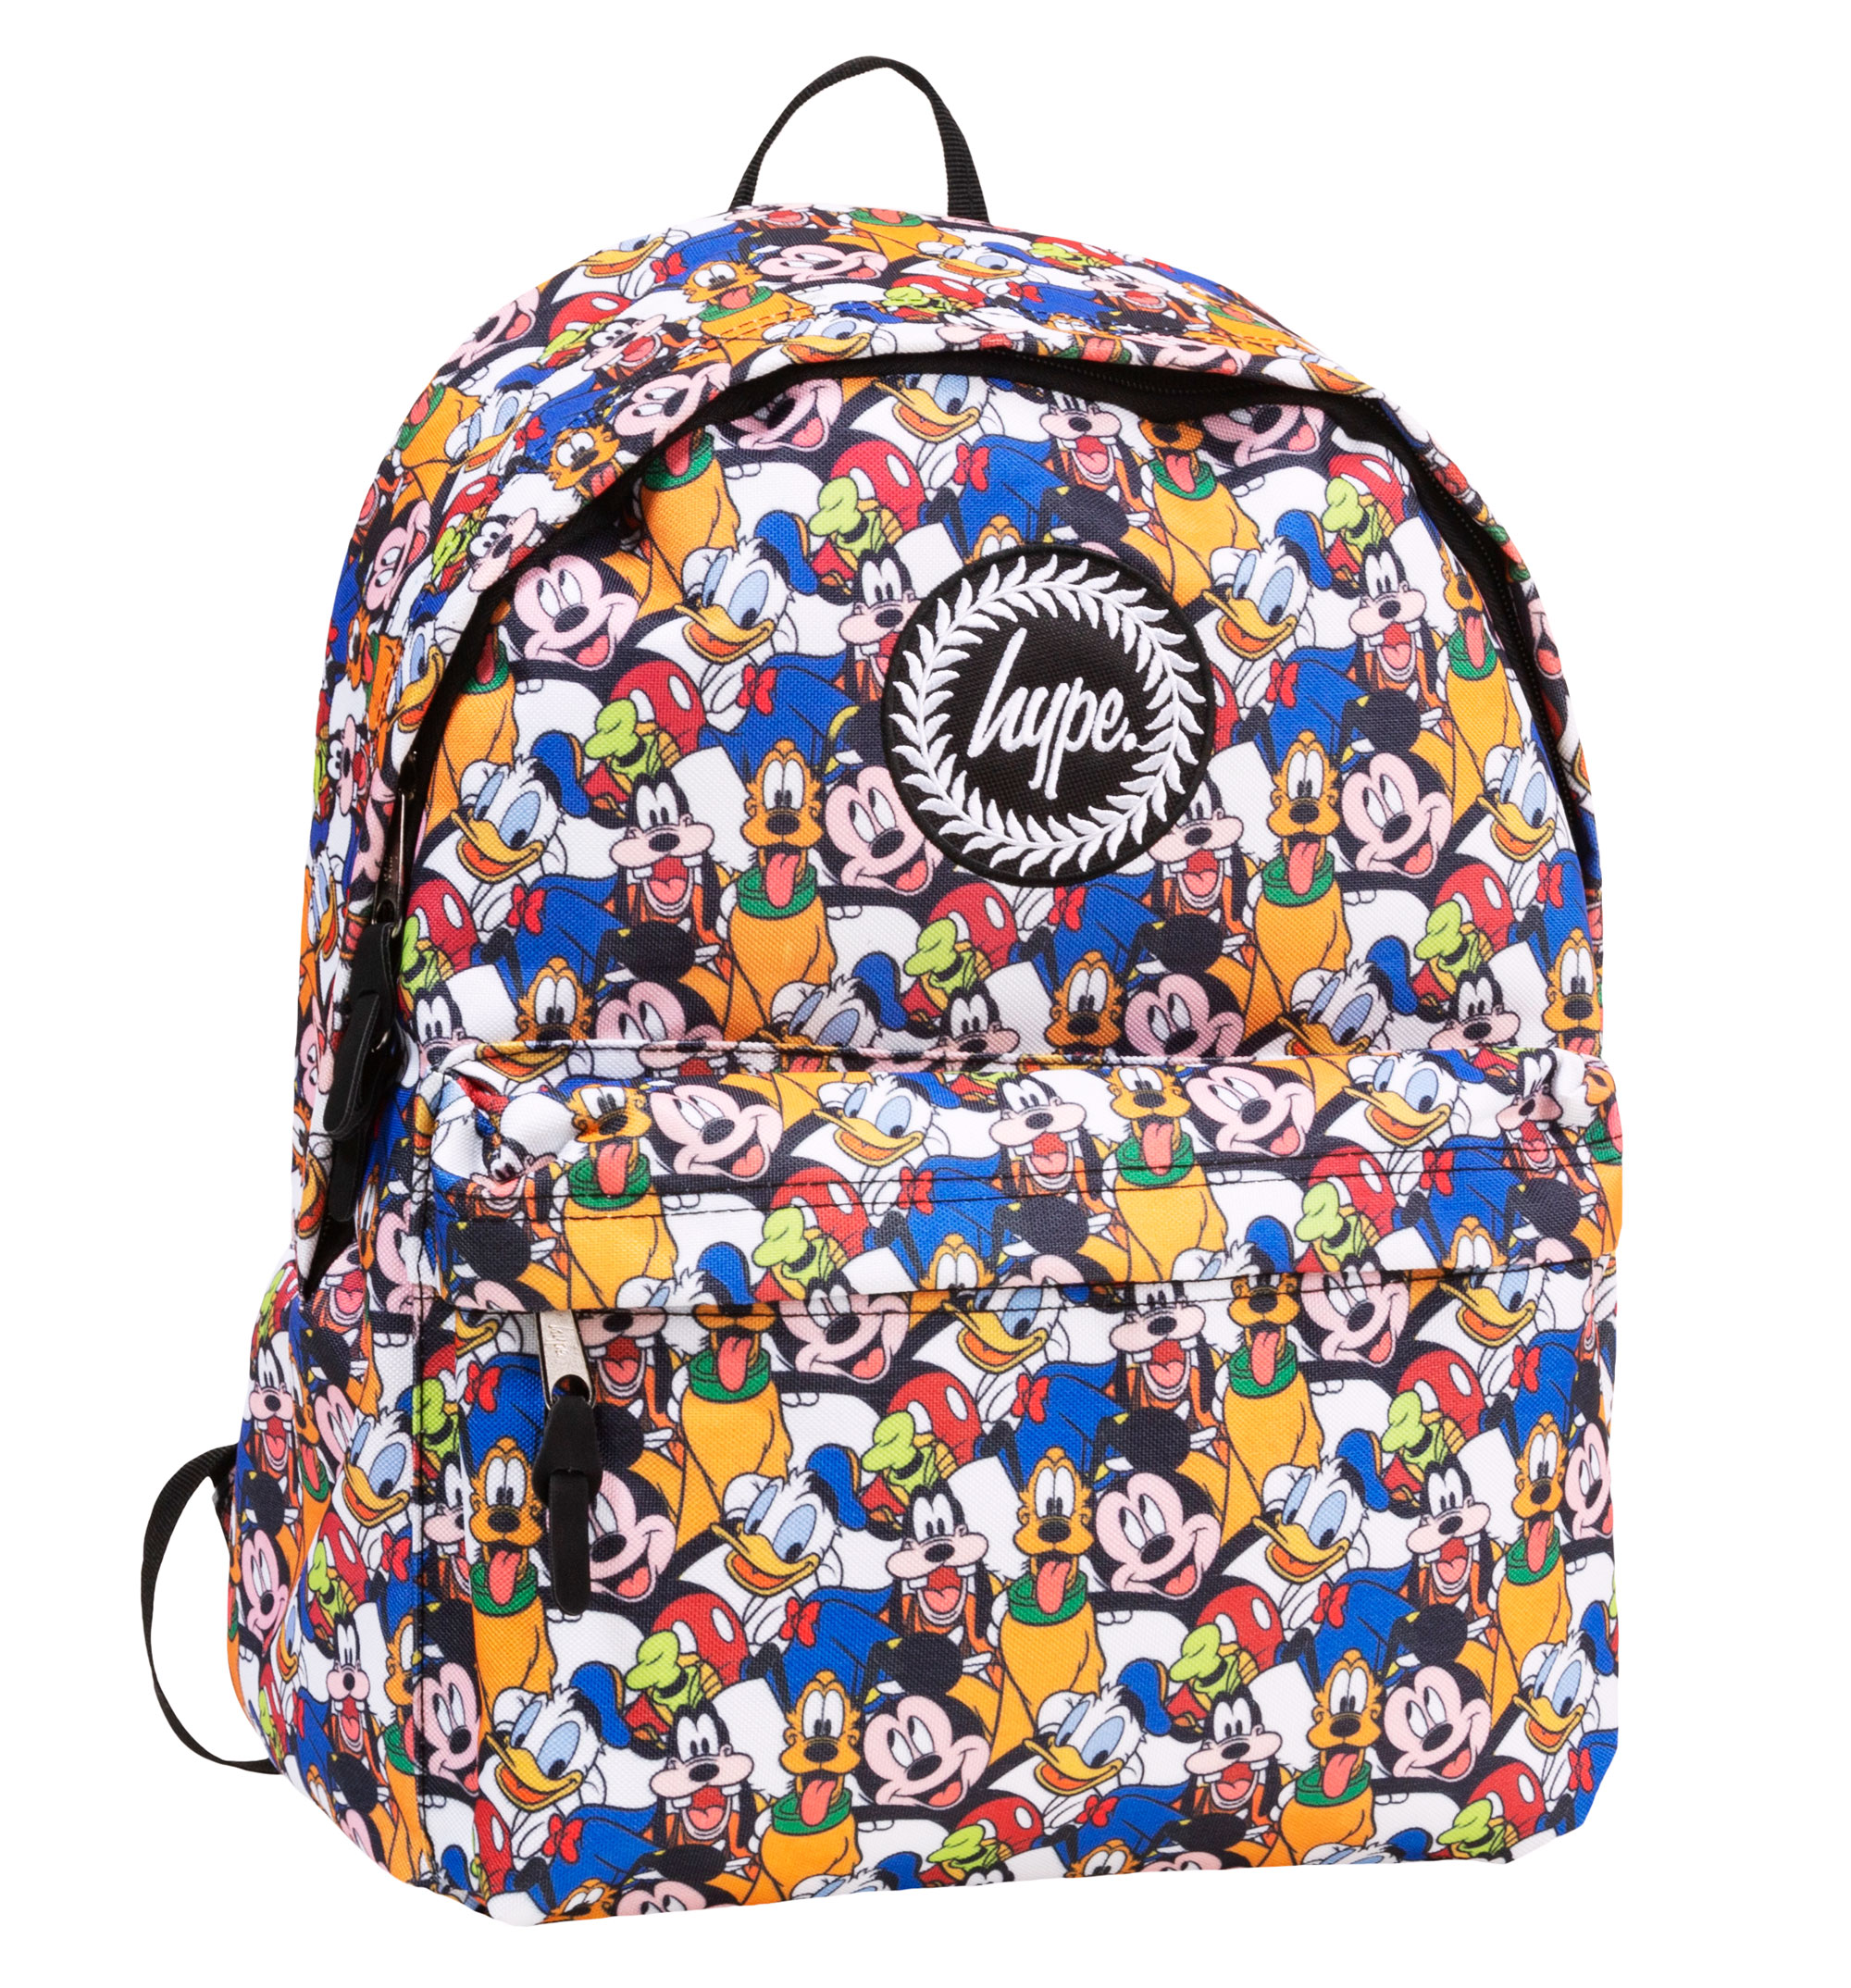 Disney Characters All Over Print Backpack from Hype - Made of polyester - All  over printed design - Measures approx 40cm x 30cm x 15cm de0cefcbee599